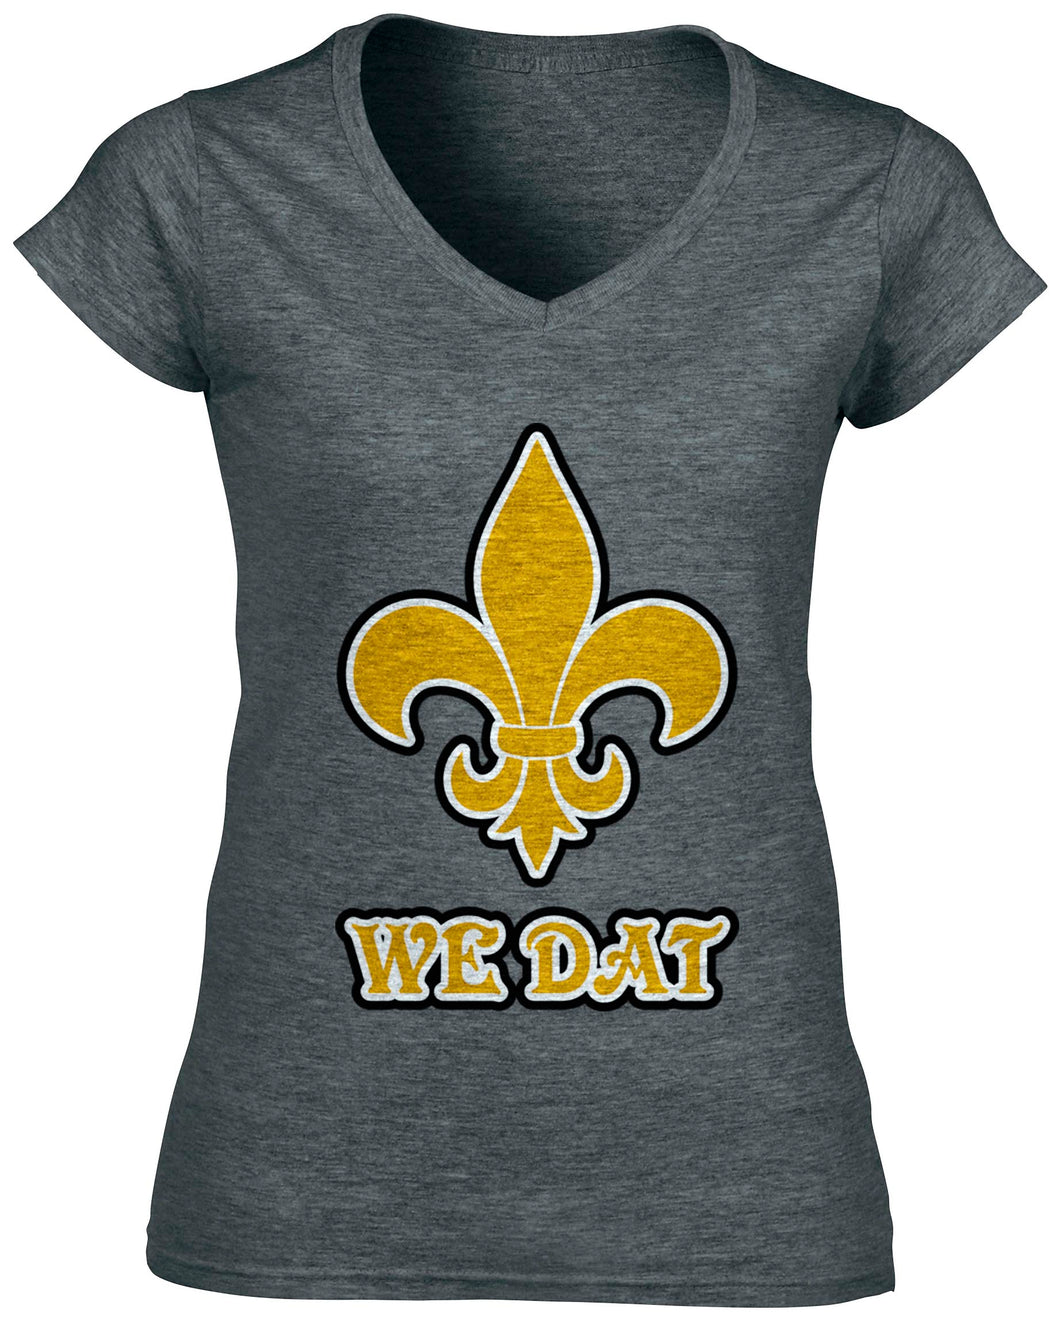 Women's New Orleans Saints Heather Grey V-Neck WE DAT T-Shirt - Urban Girl Fund